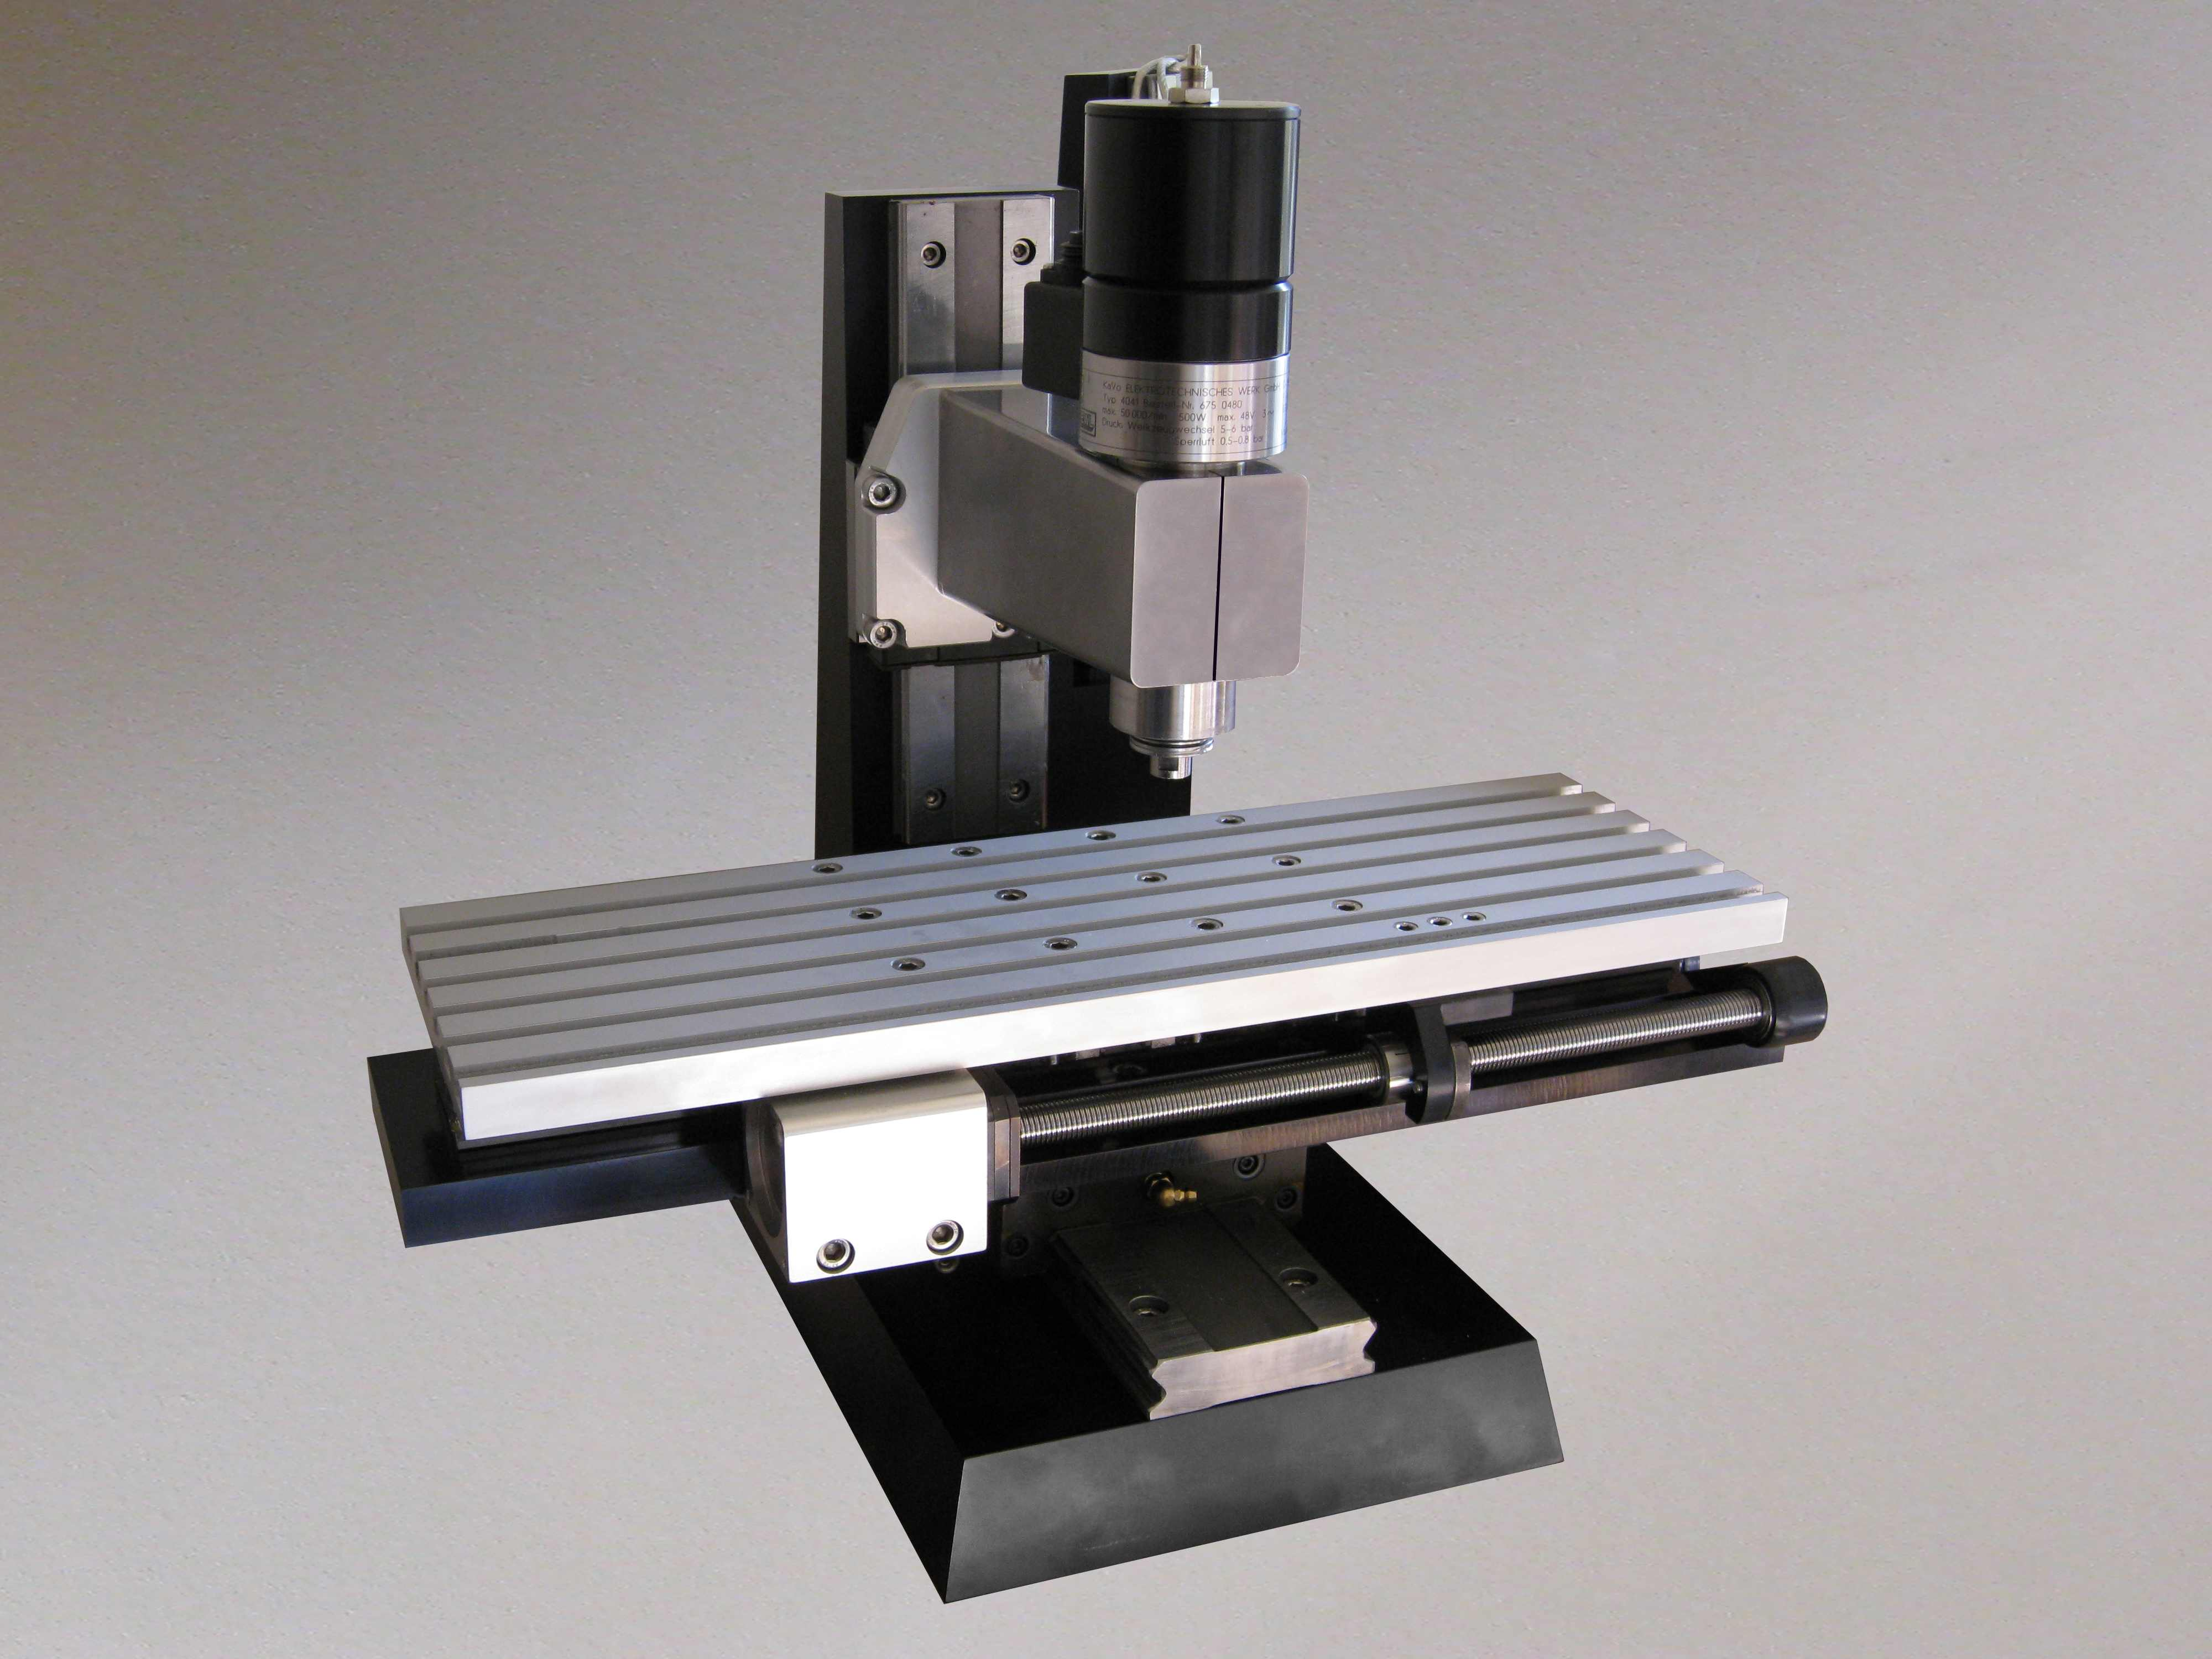 Small Cnc Mill >> Zealcnc Build Your Own Cnc Mill Or Lathe